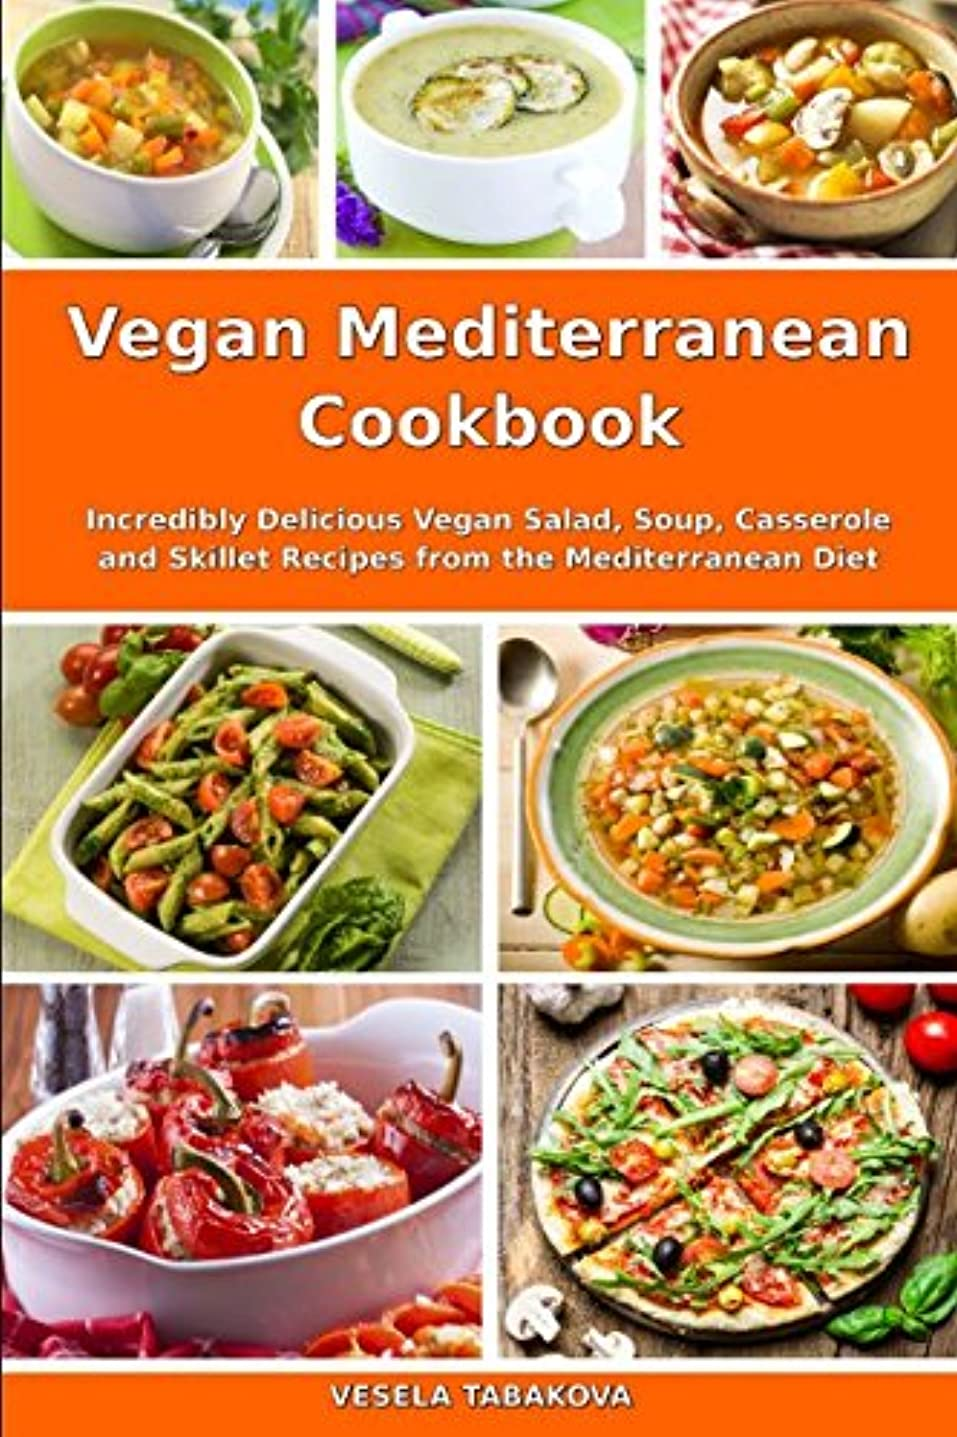 ブリーフケース再発する負担Vegan Mediterranean Cookbook: Incredibly Delicious Vegan Salad, Soup, Casserole and Skillet Recipes from the Mediterranean Diet (Everyday Vegan Recipes and Clean Eating Meals)